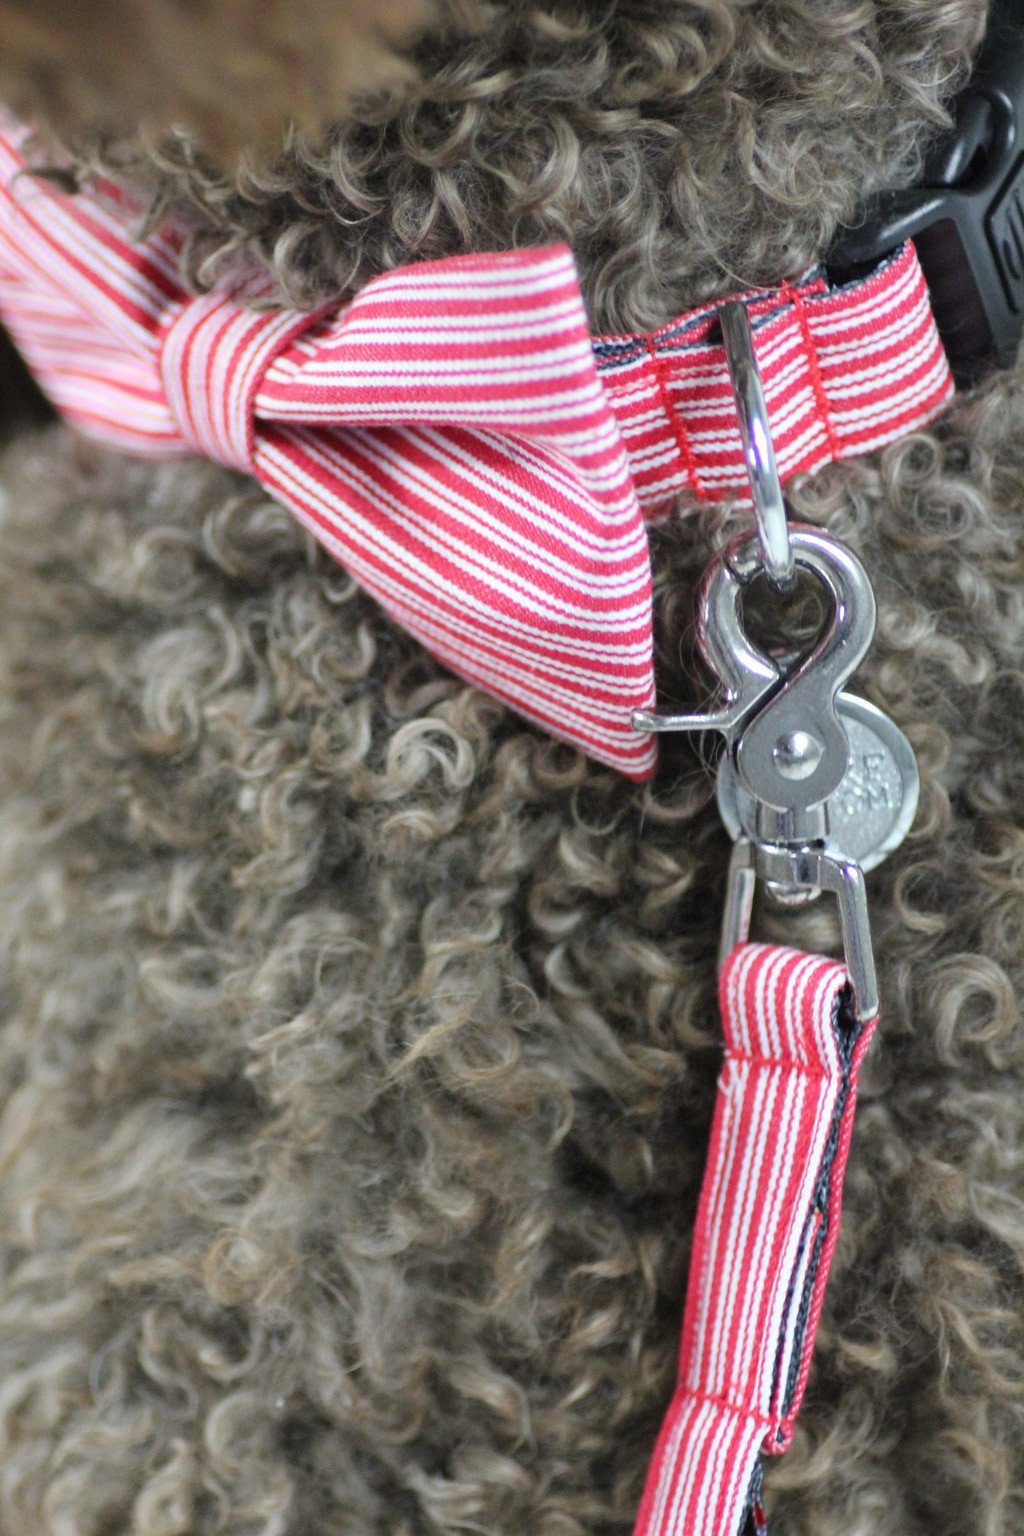 Dharf dog bow tie, collar and leash in red pinstripes